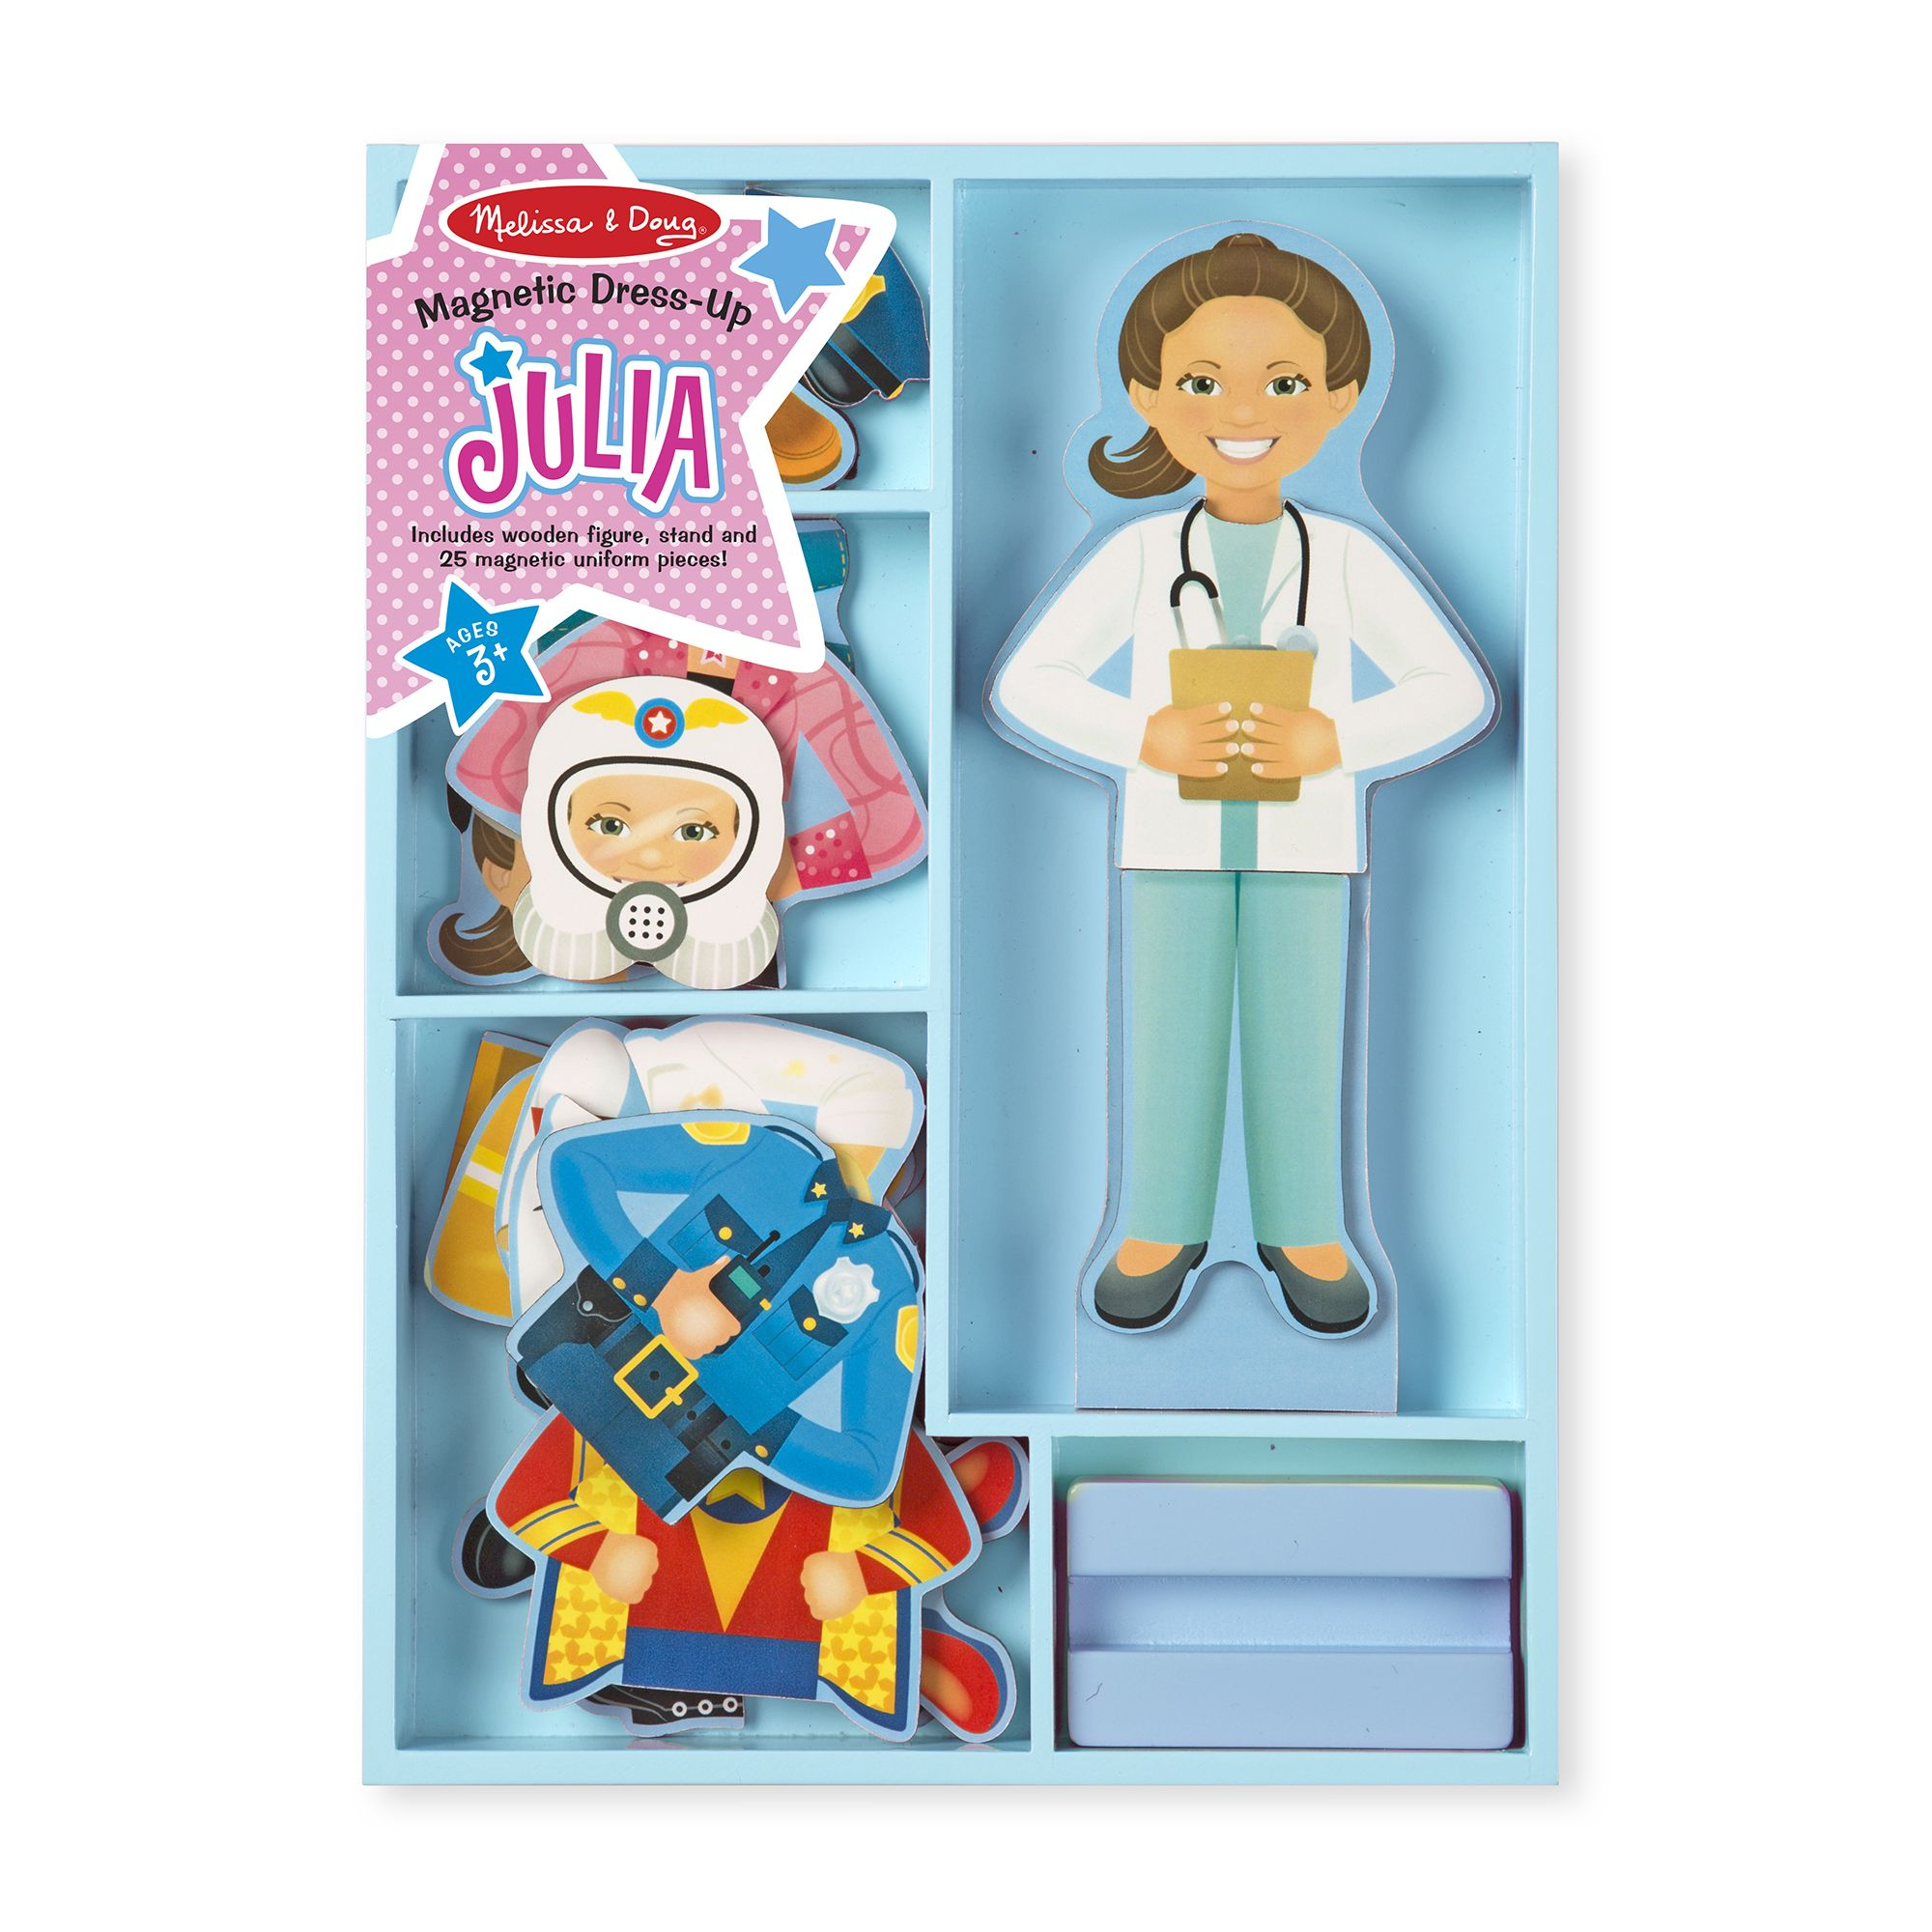 Julia Magnetic Dress-Up 5164